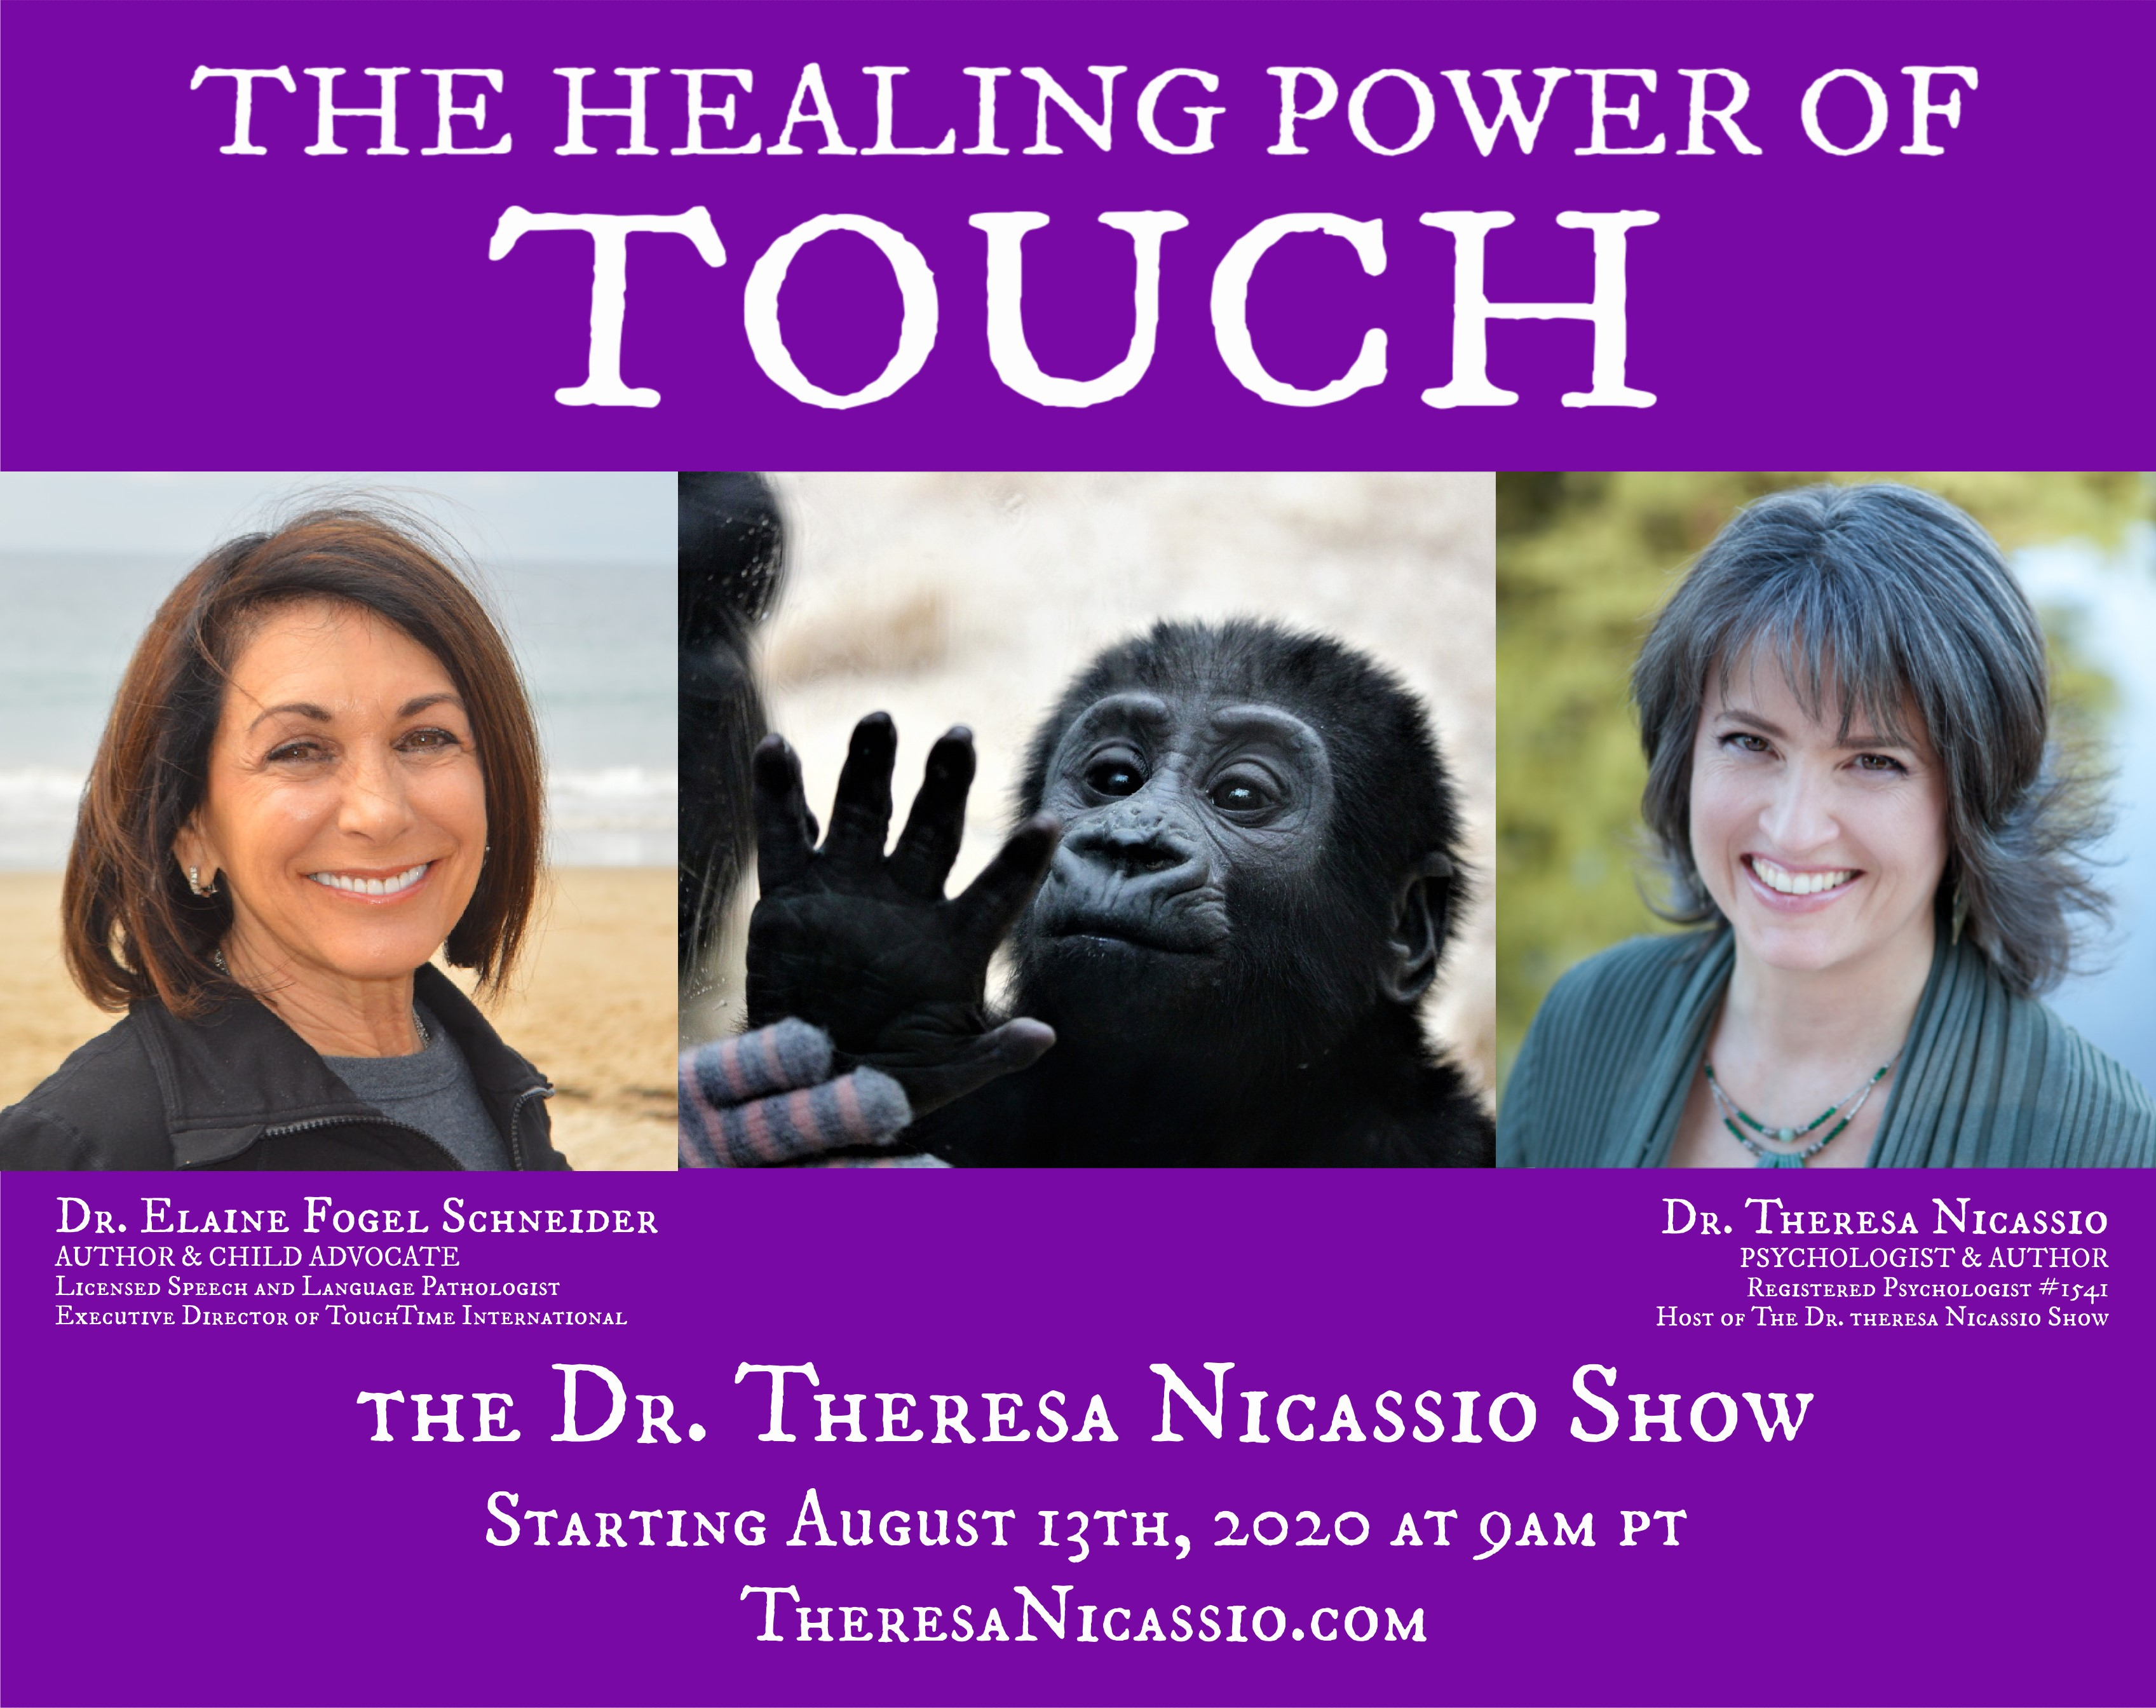 The Healing Power of Touch with Dr. Elaine Fogel Schneider on The Dr. Theresa Nicassio Show on HealthyLife.net - All Positive Talk Radio